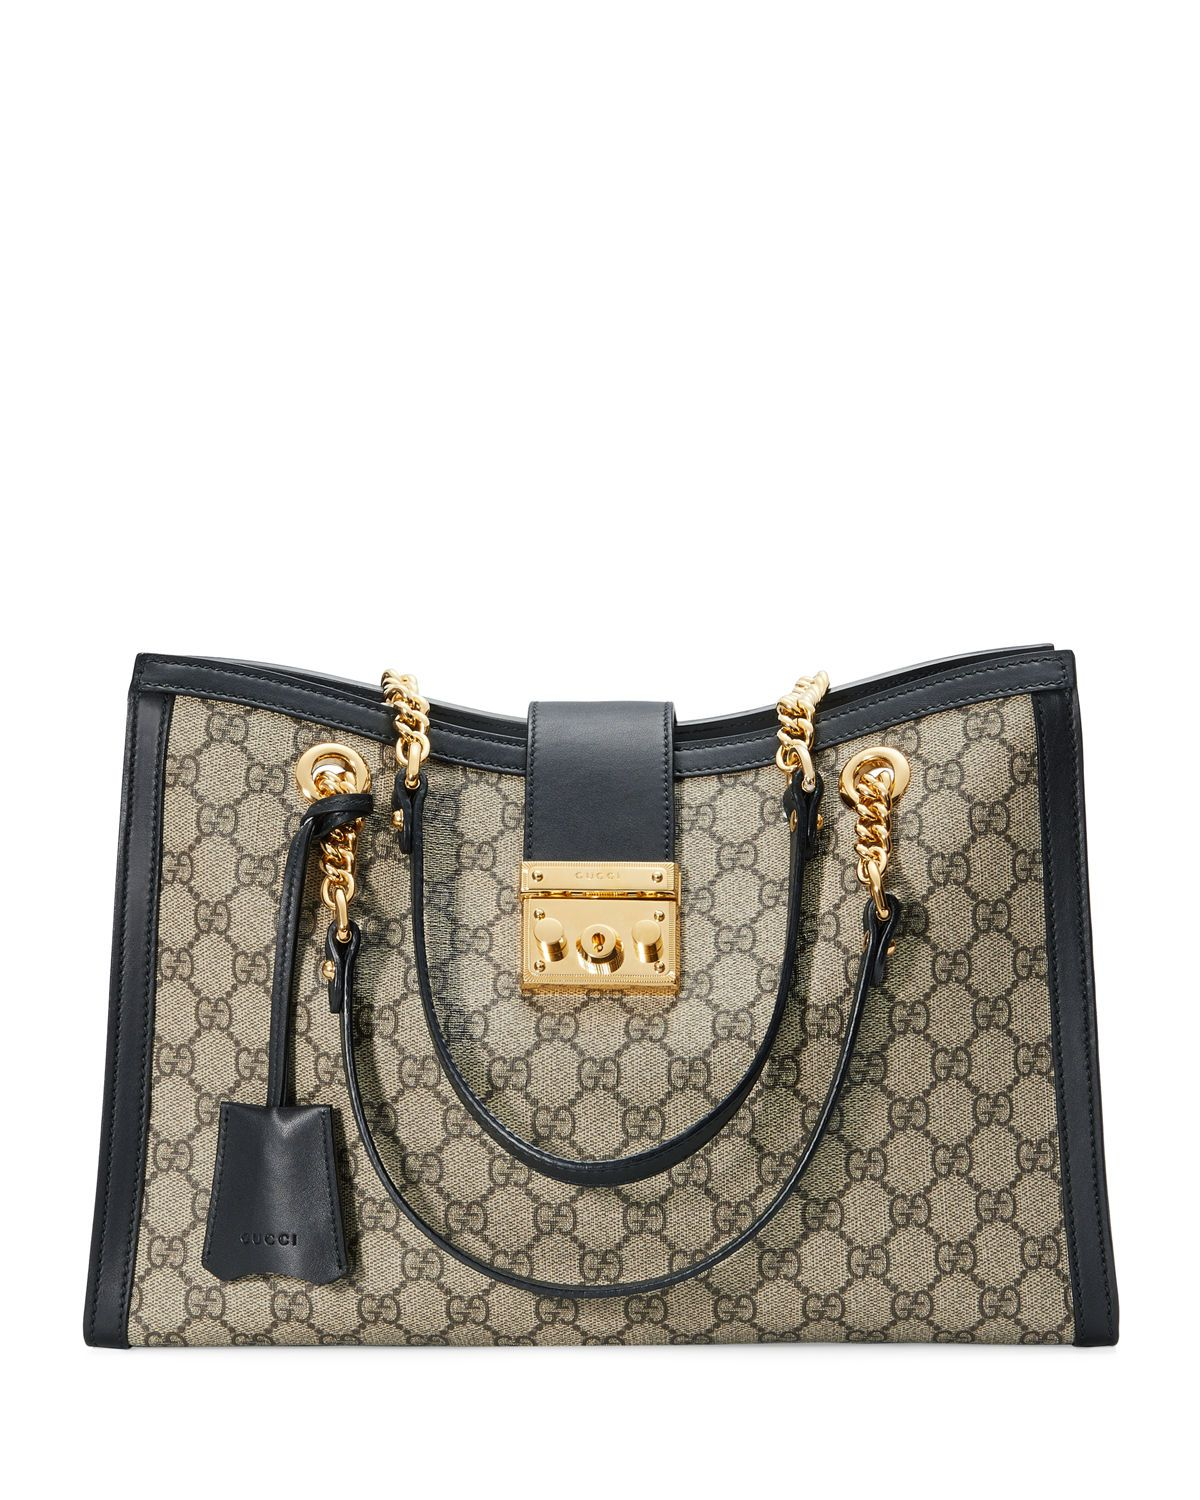 74bde1a58e2410 Gucci Padlock GG Supreme Canvas Medium Shoulder Bag | Bags | Gucci ...